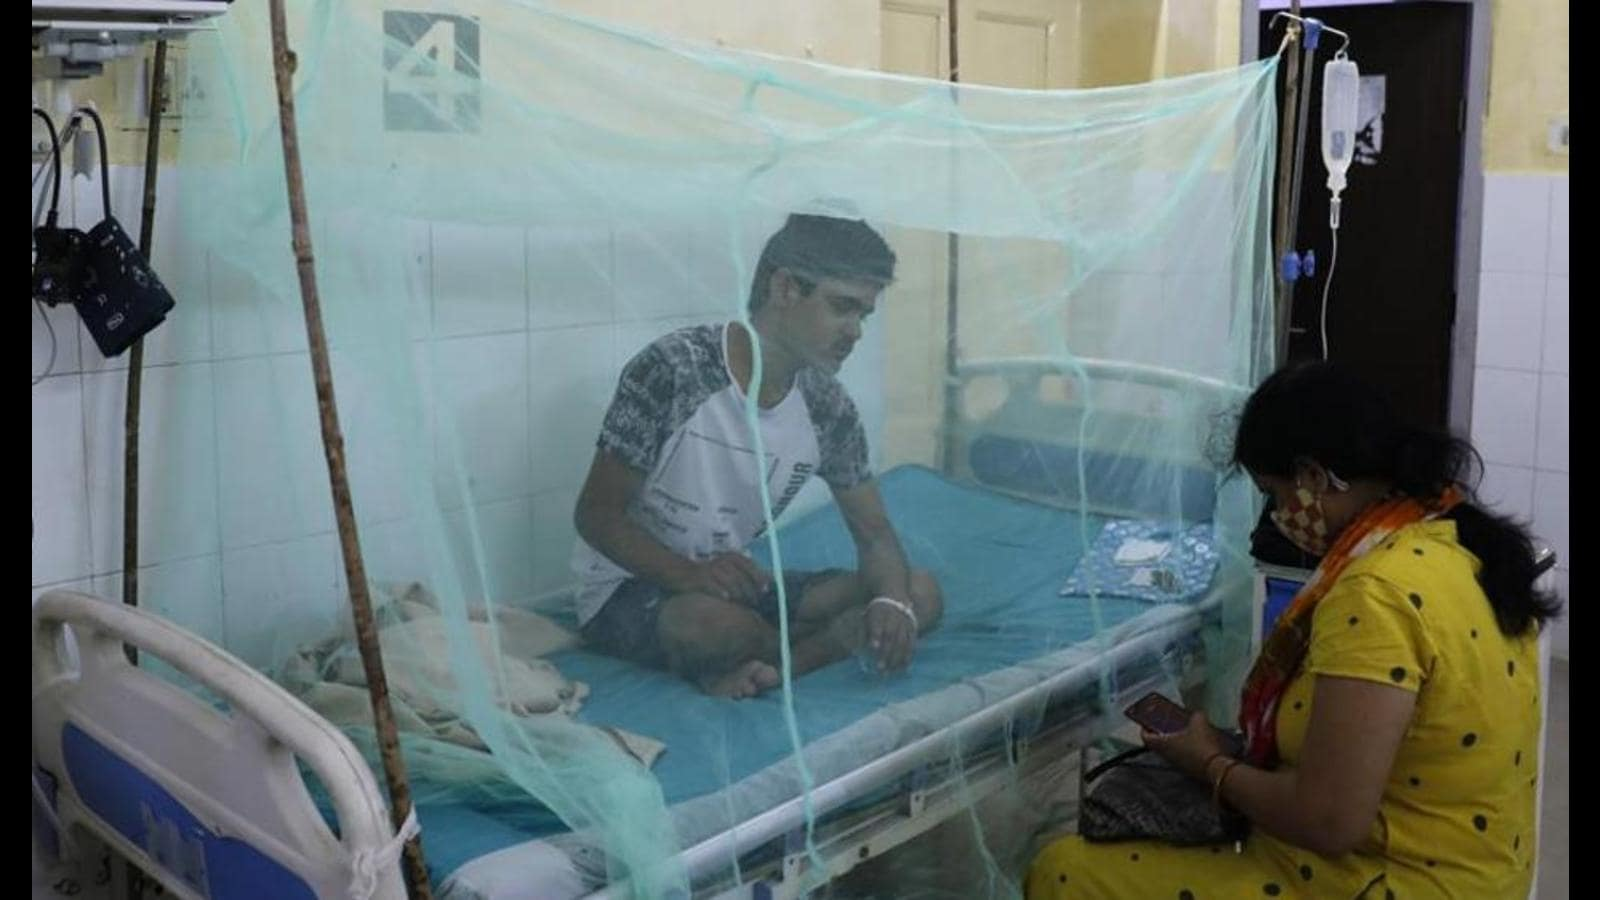 Lucknow saw 150 dengue cases in Sept; next 15 days crucial: Experts